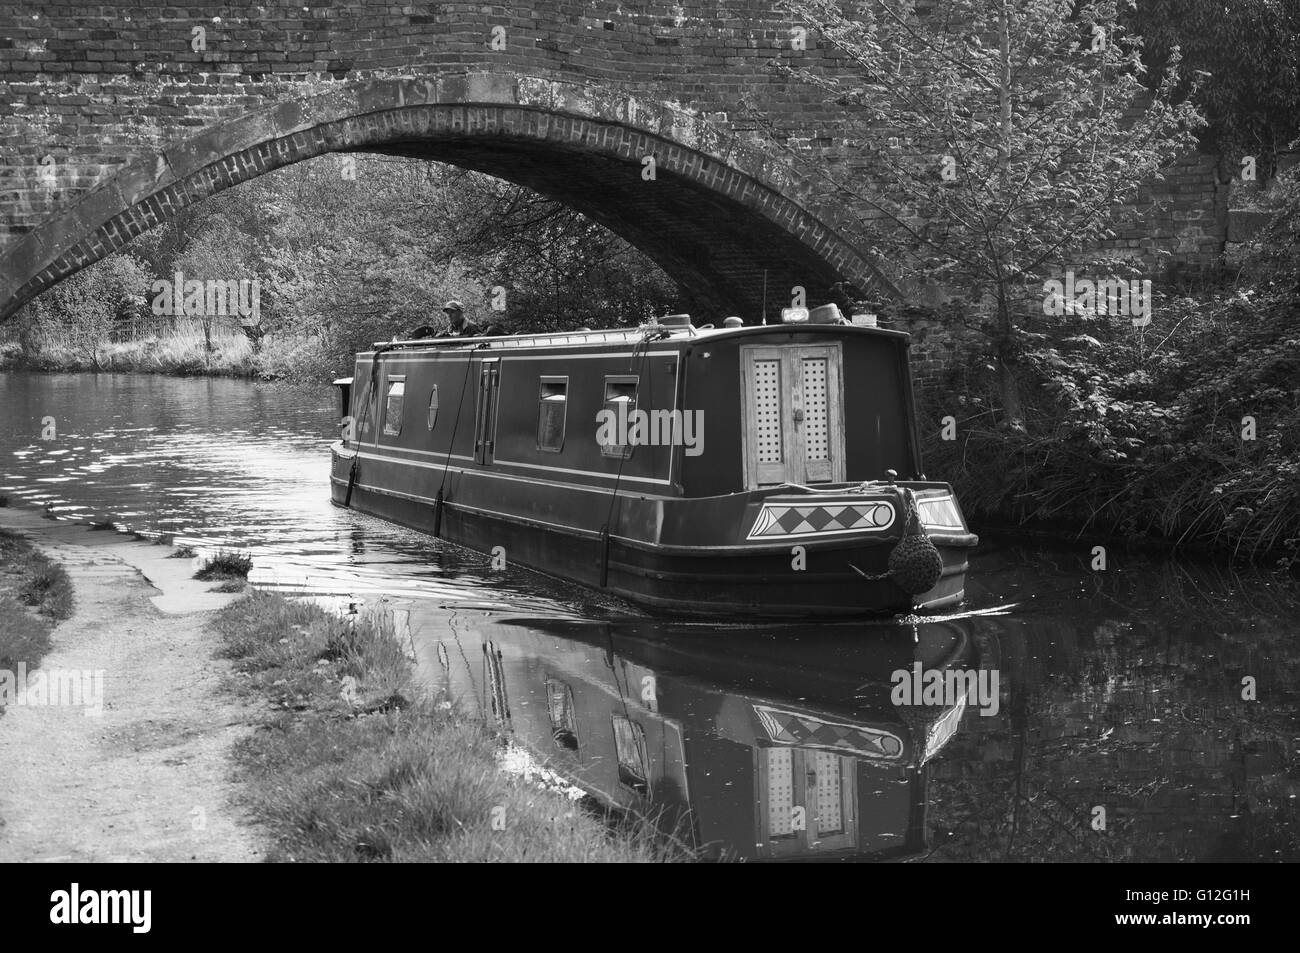 Canal boats - Stock Image